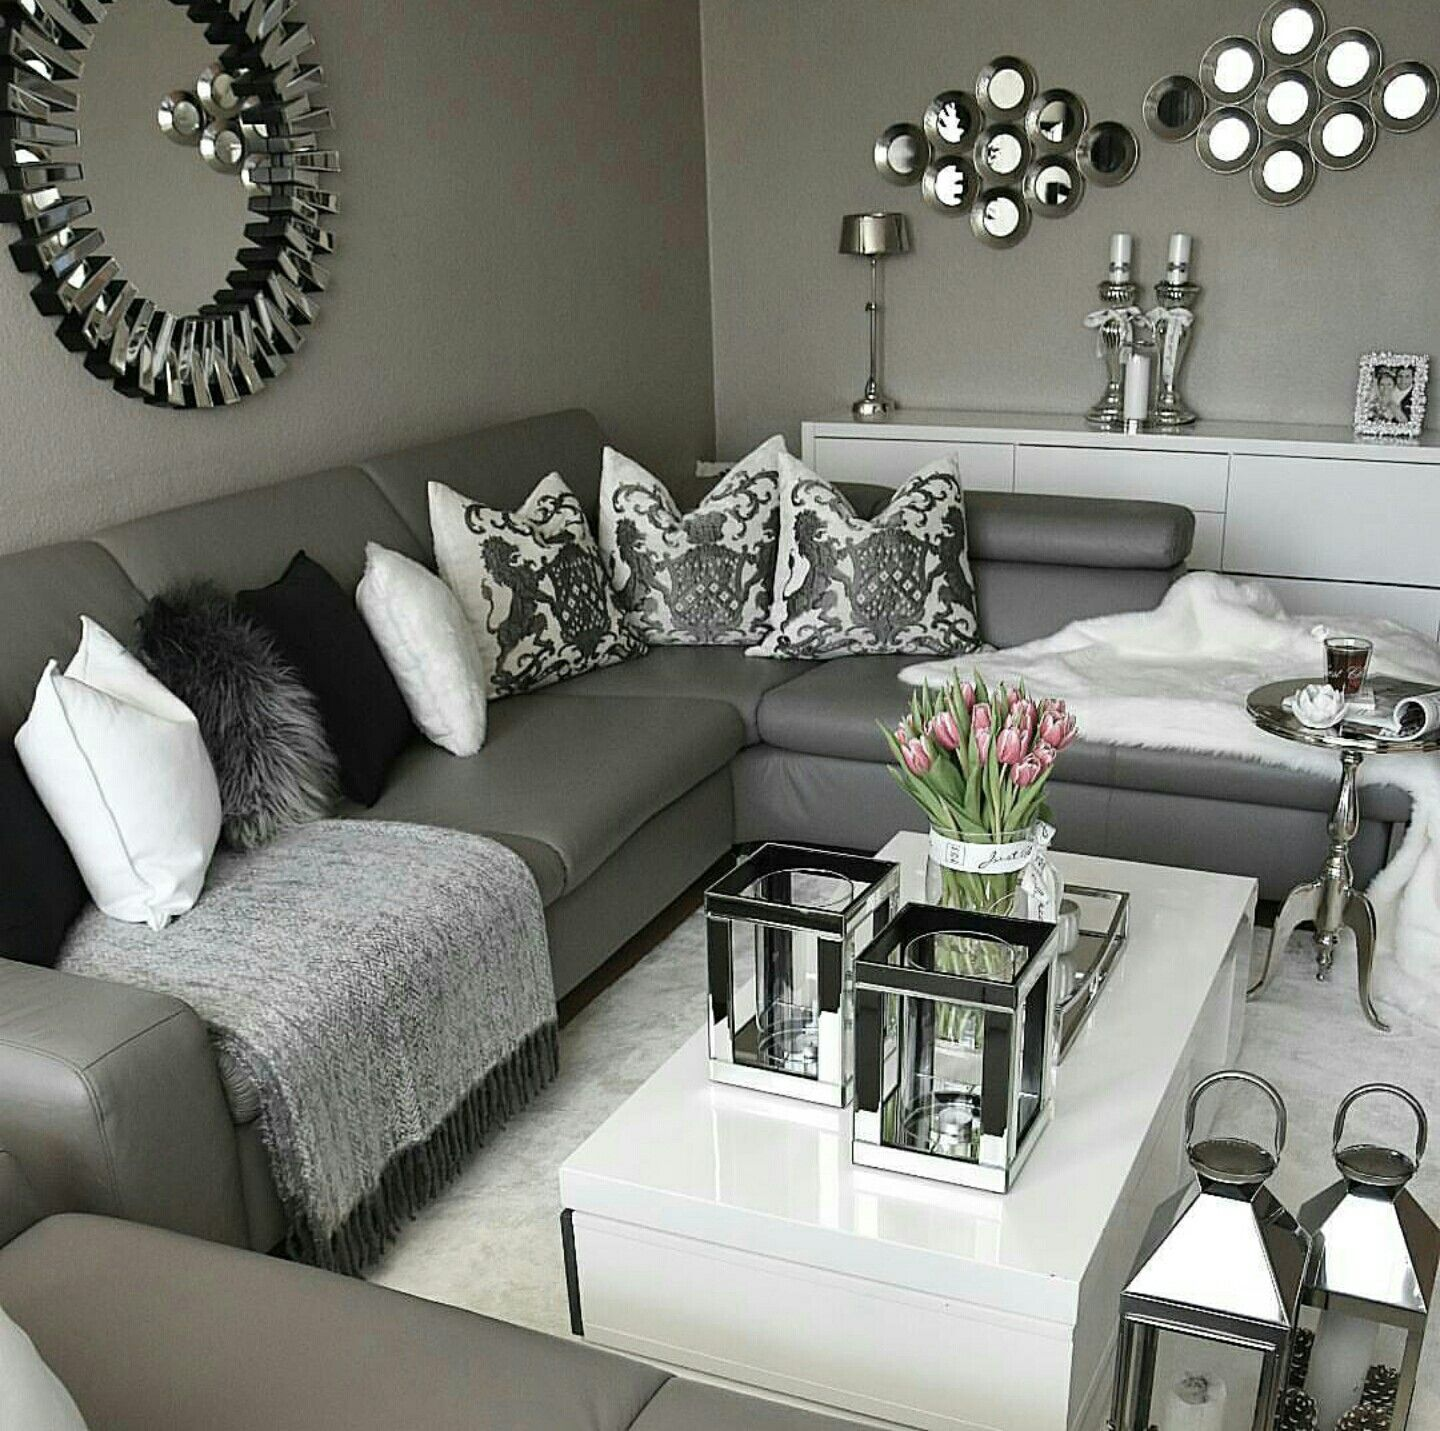 Pin von Karla Jones auf EXQUISITE LIVING ROOMS | Pinterest | Neue ...